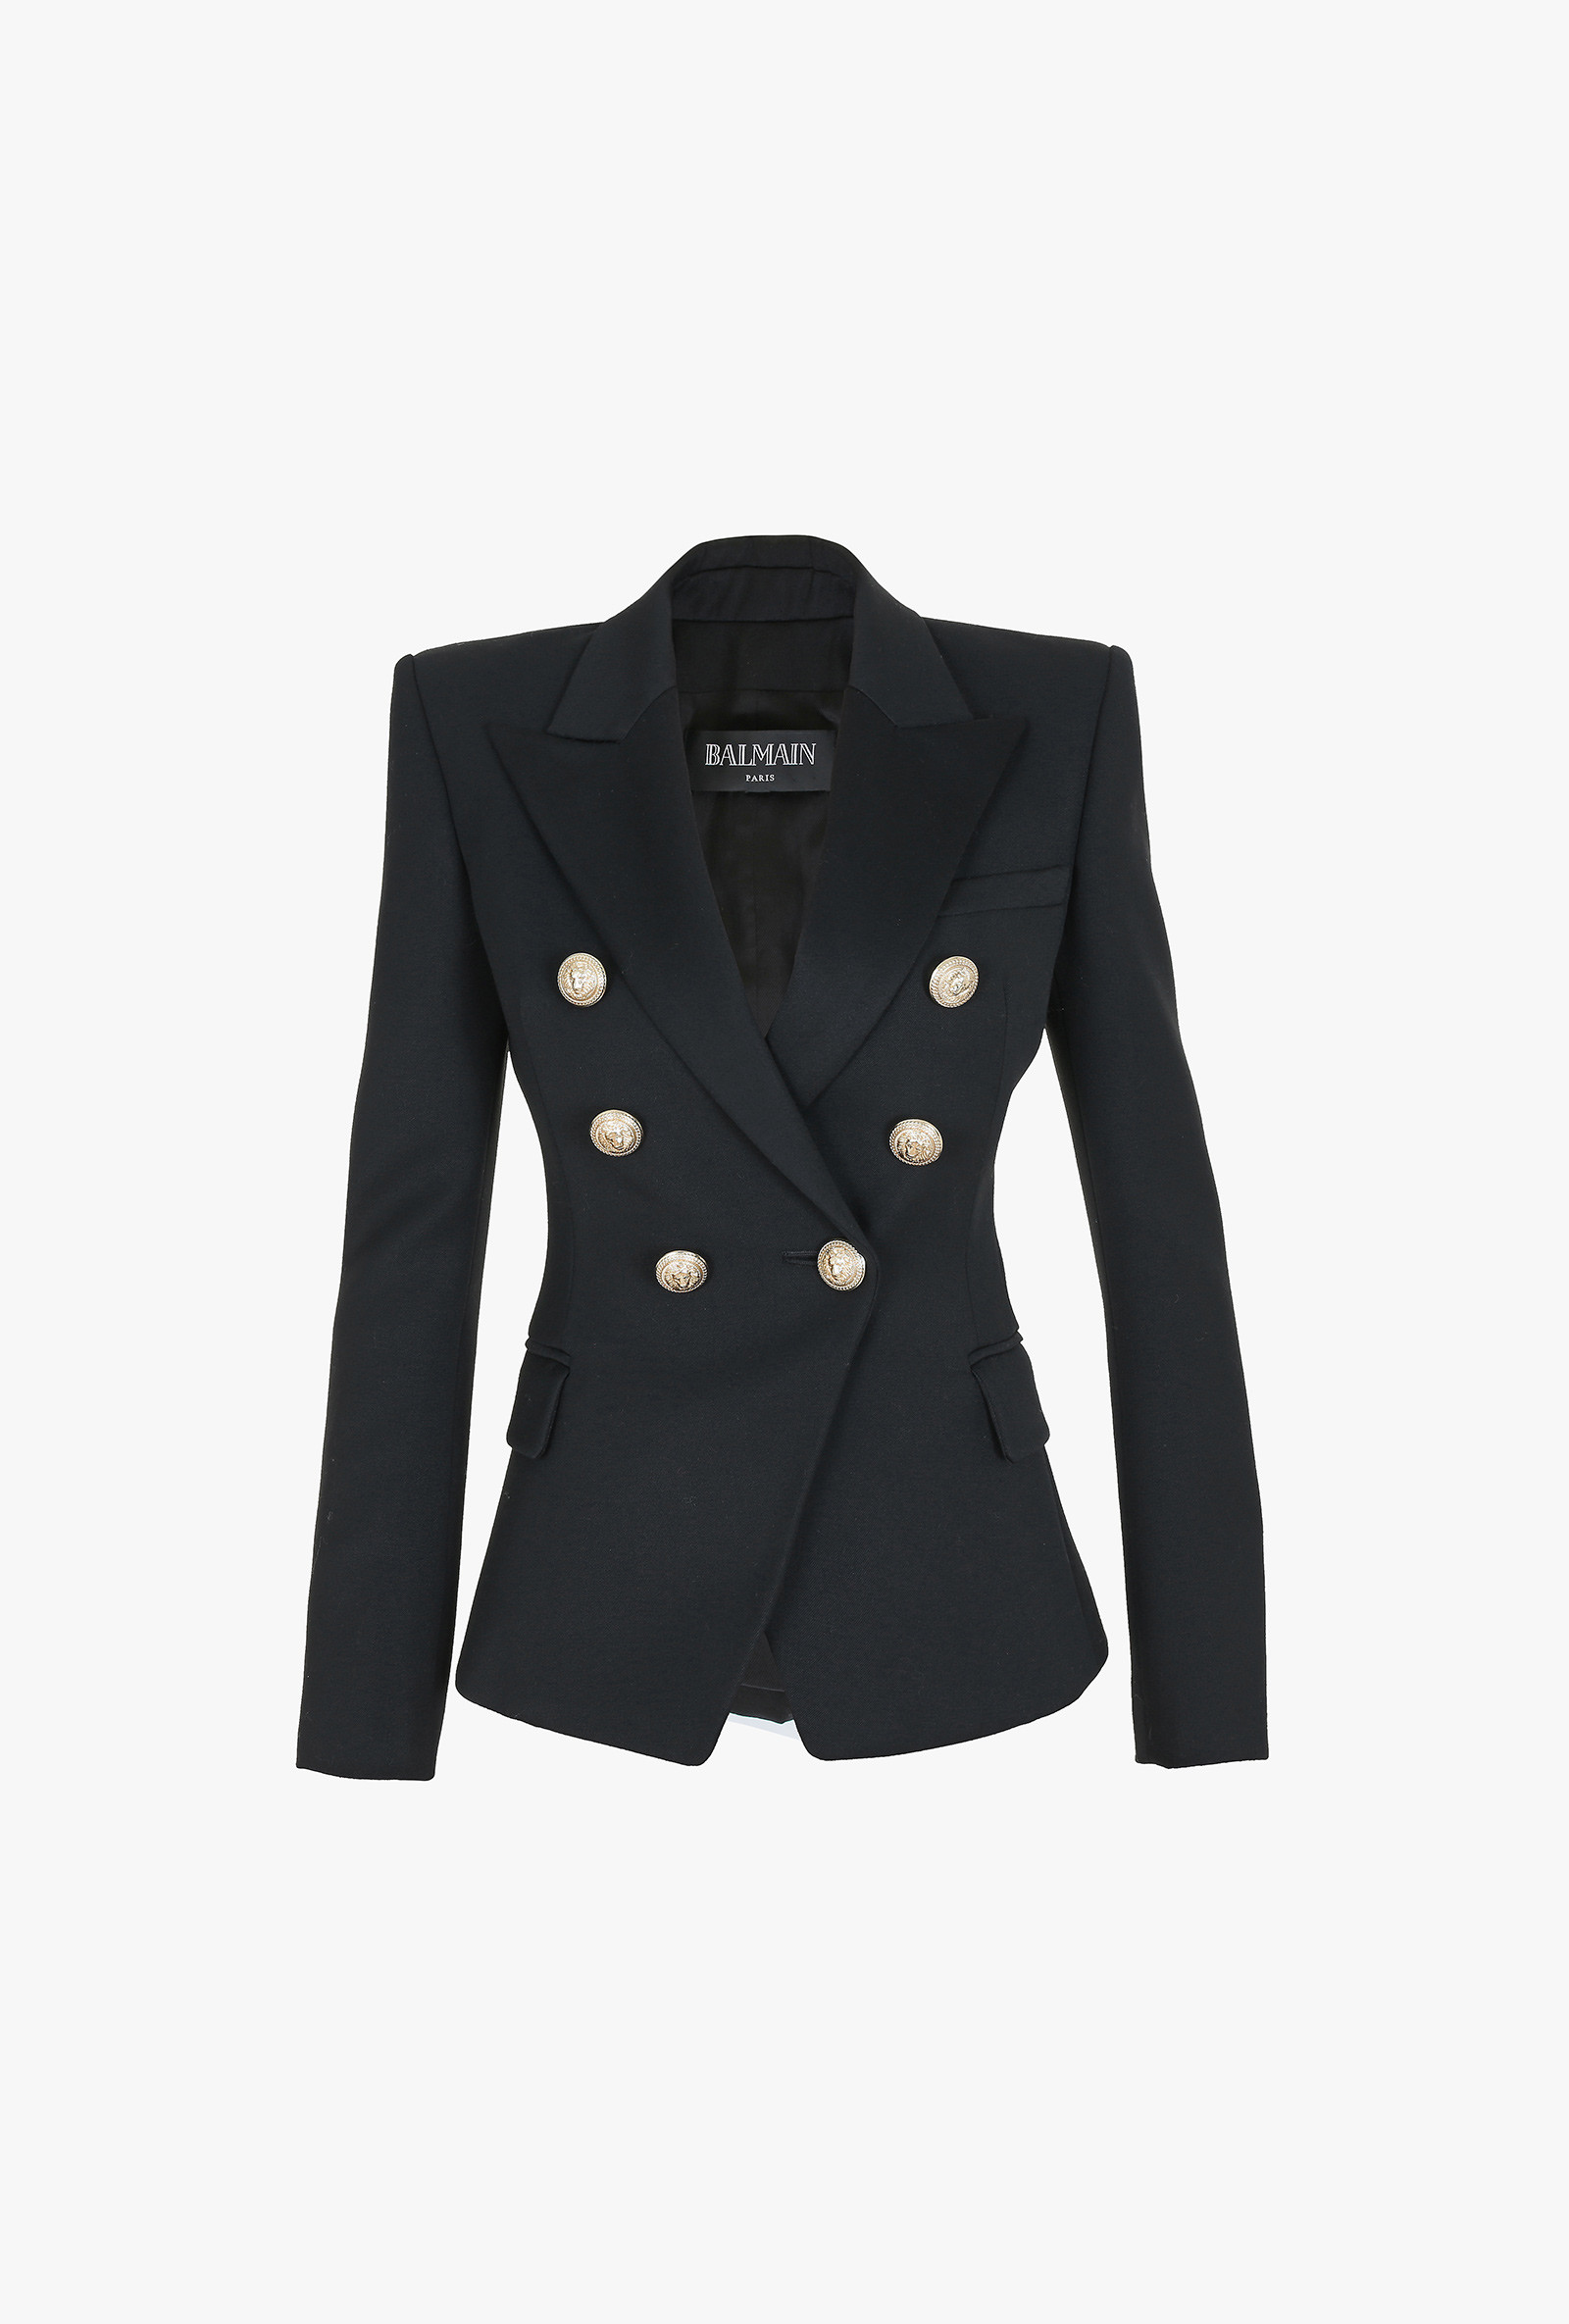 Balmain Leather Skirt | Double Breasted Wool Blazer | Balmain Double Breasted Blazer